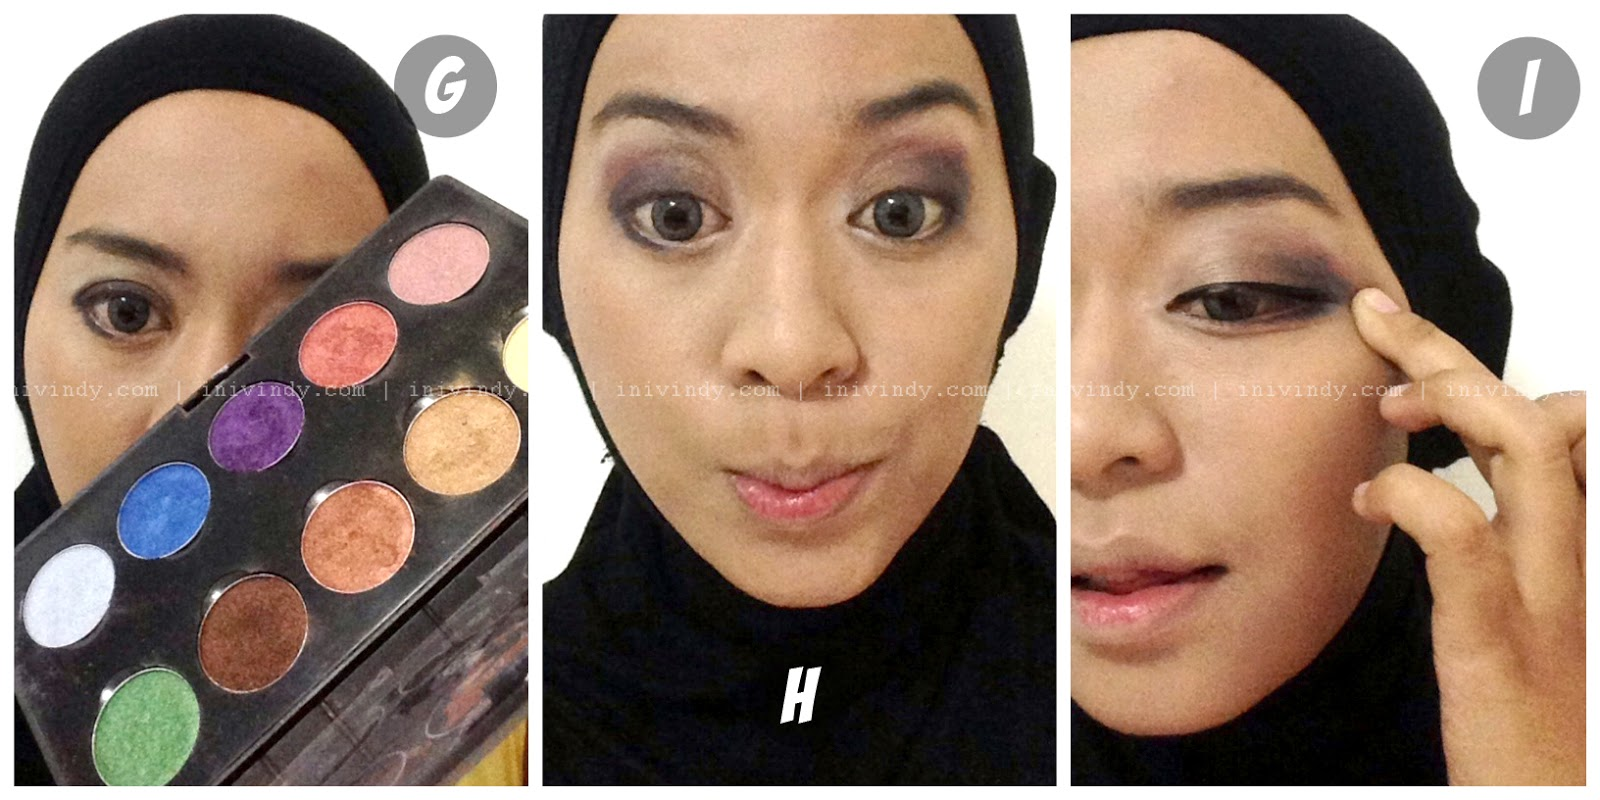 Ini Vindy Yang Ajaib Tutorial Make Up Natural Dan Hijab Wisuda